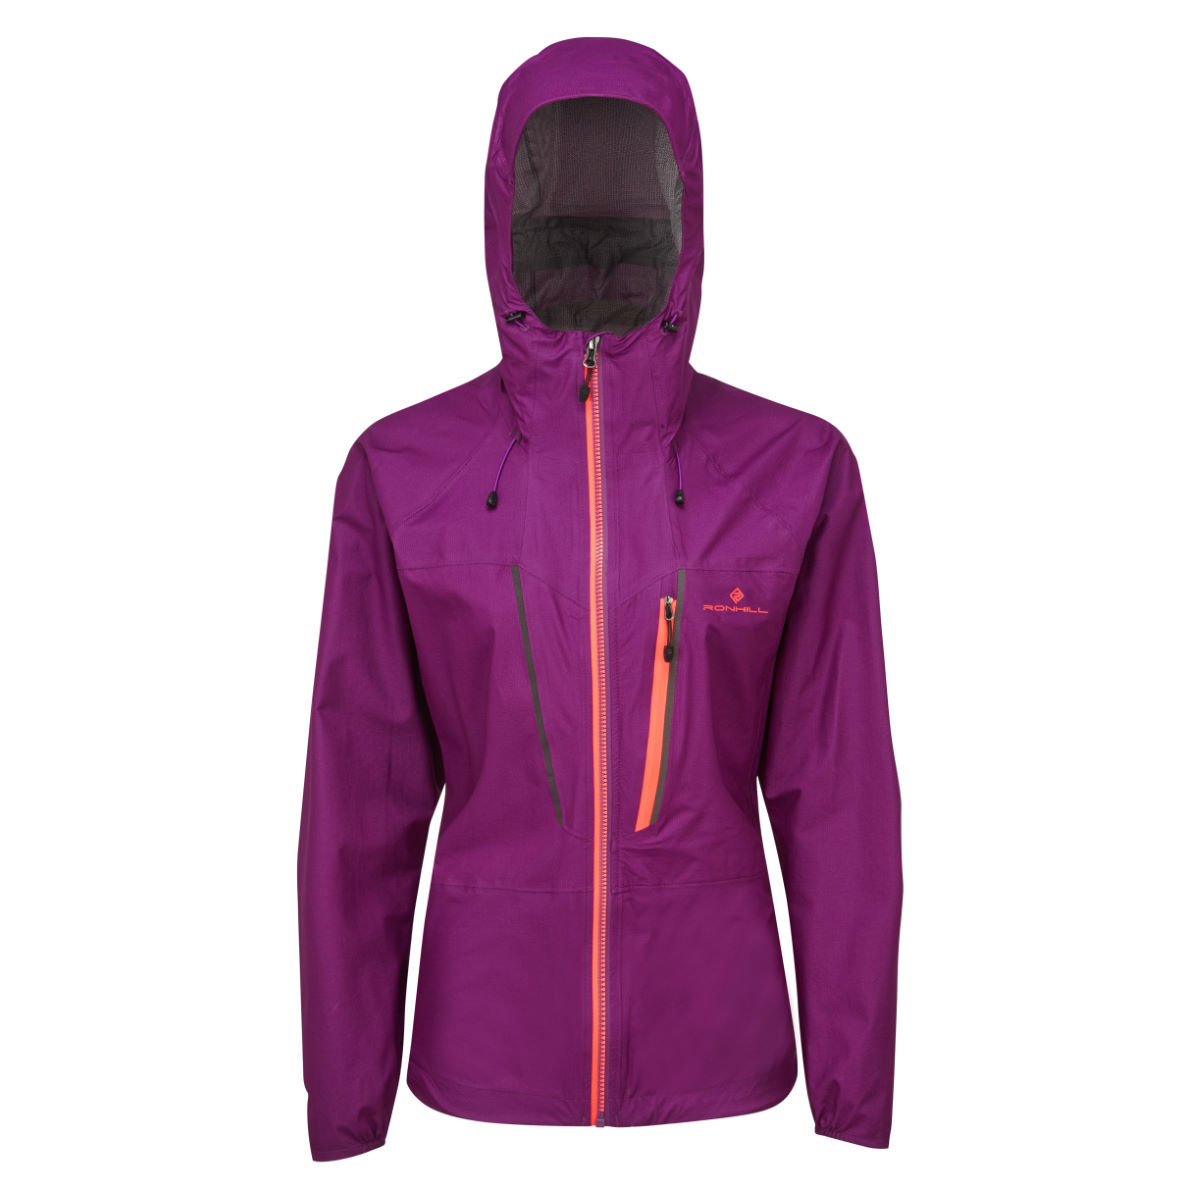 Ronhill Ronhill Womens Infinity Fortify Jacket   Jackets